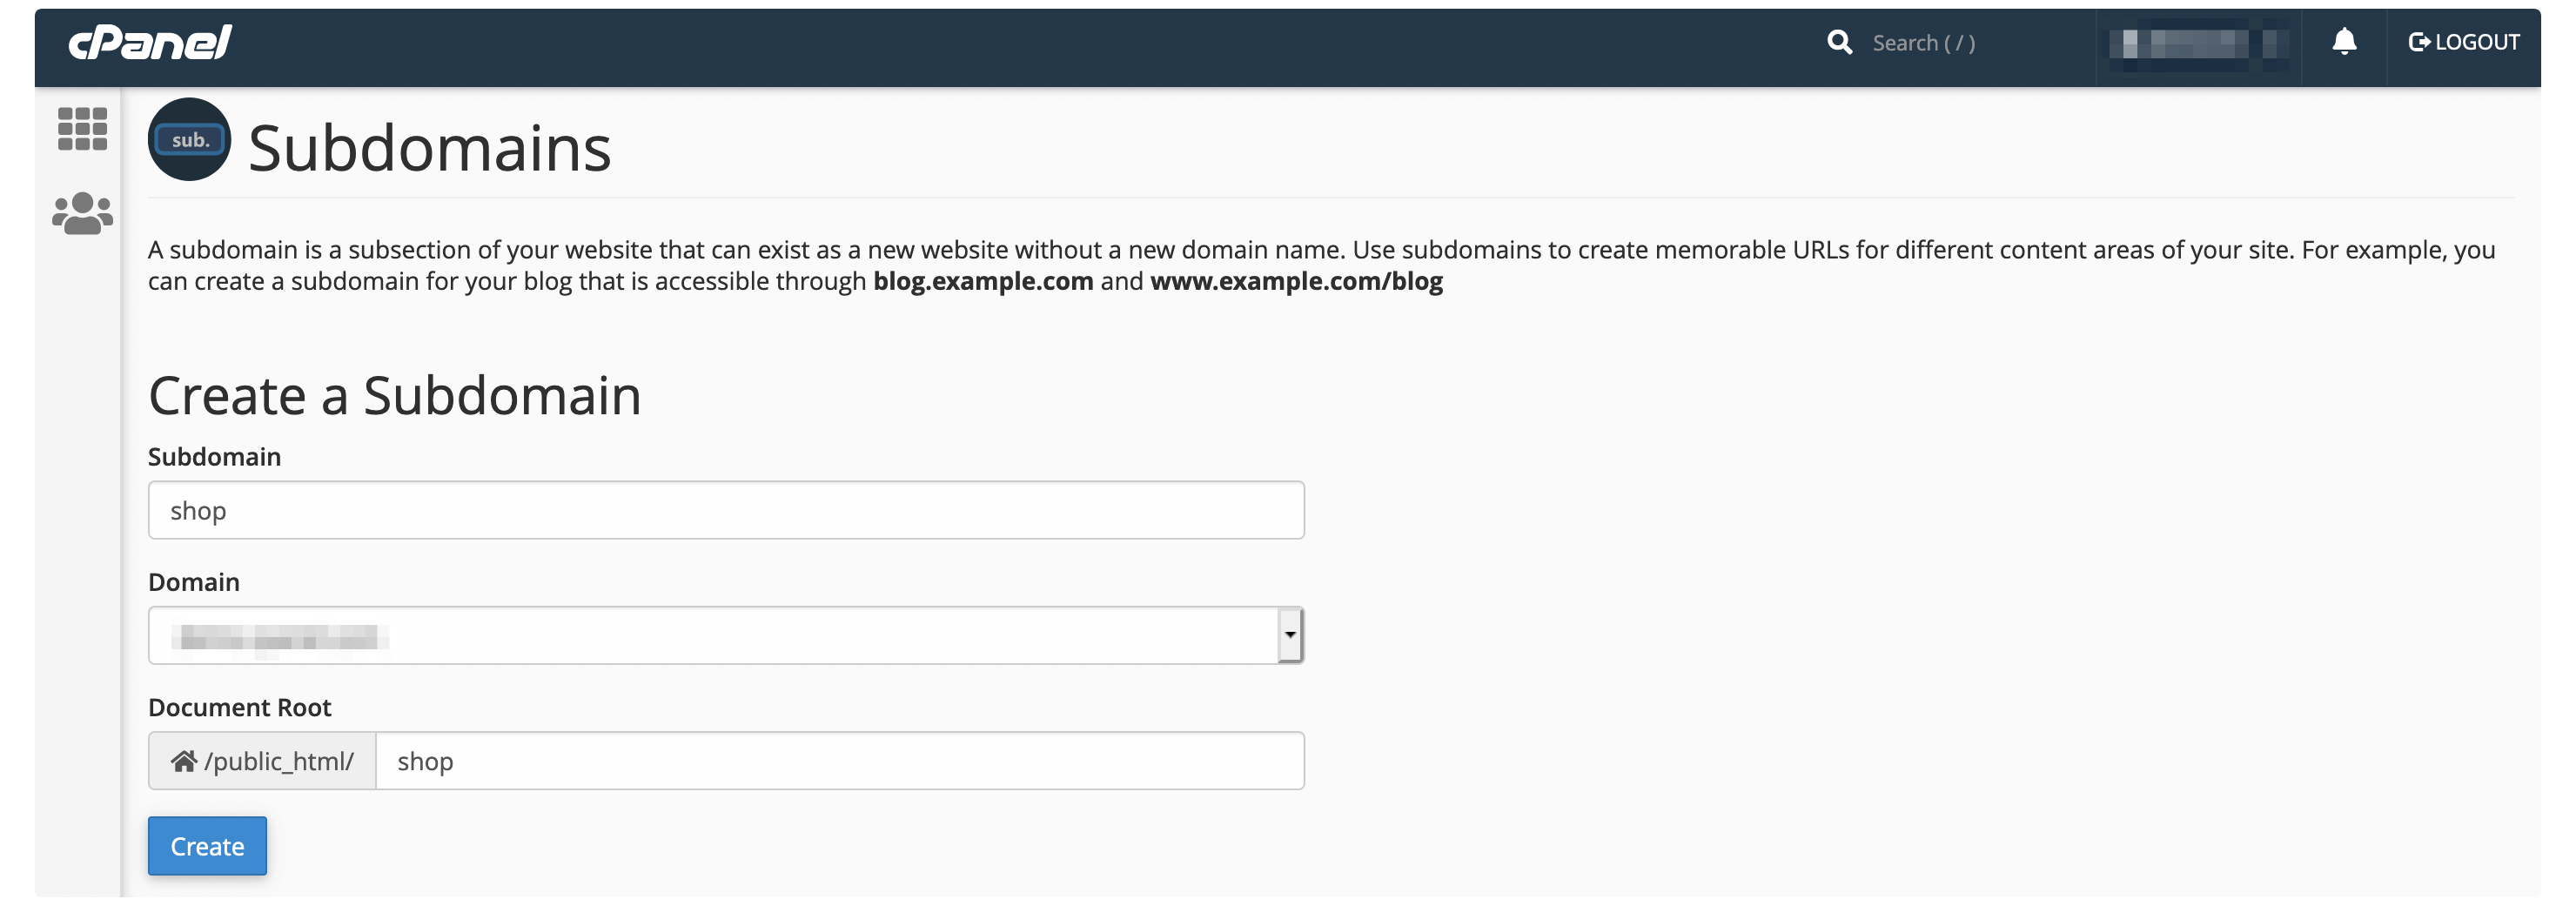 Creating a subdomain within cPanel.